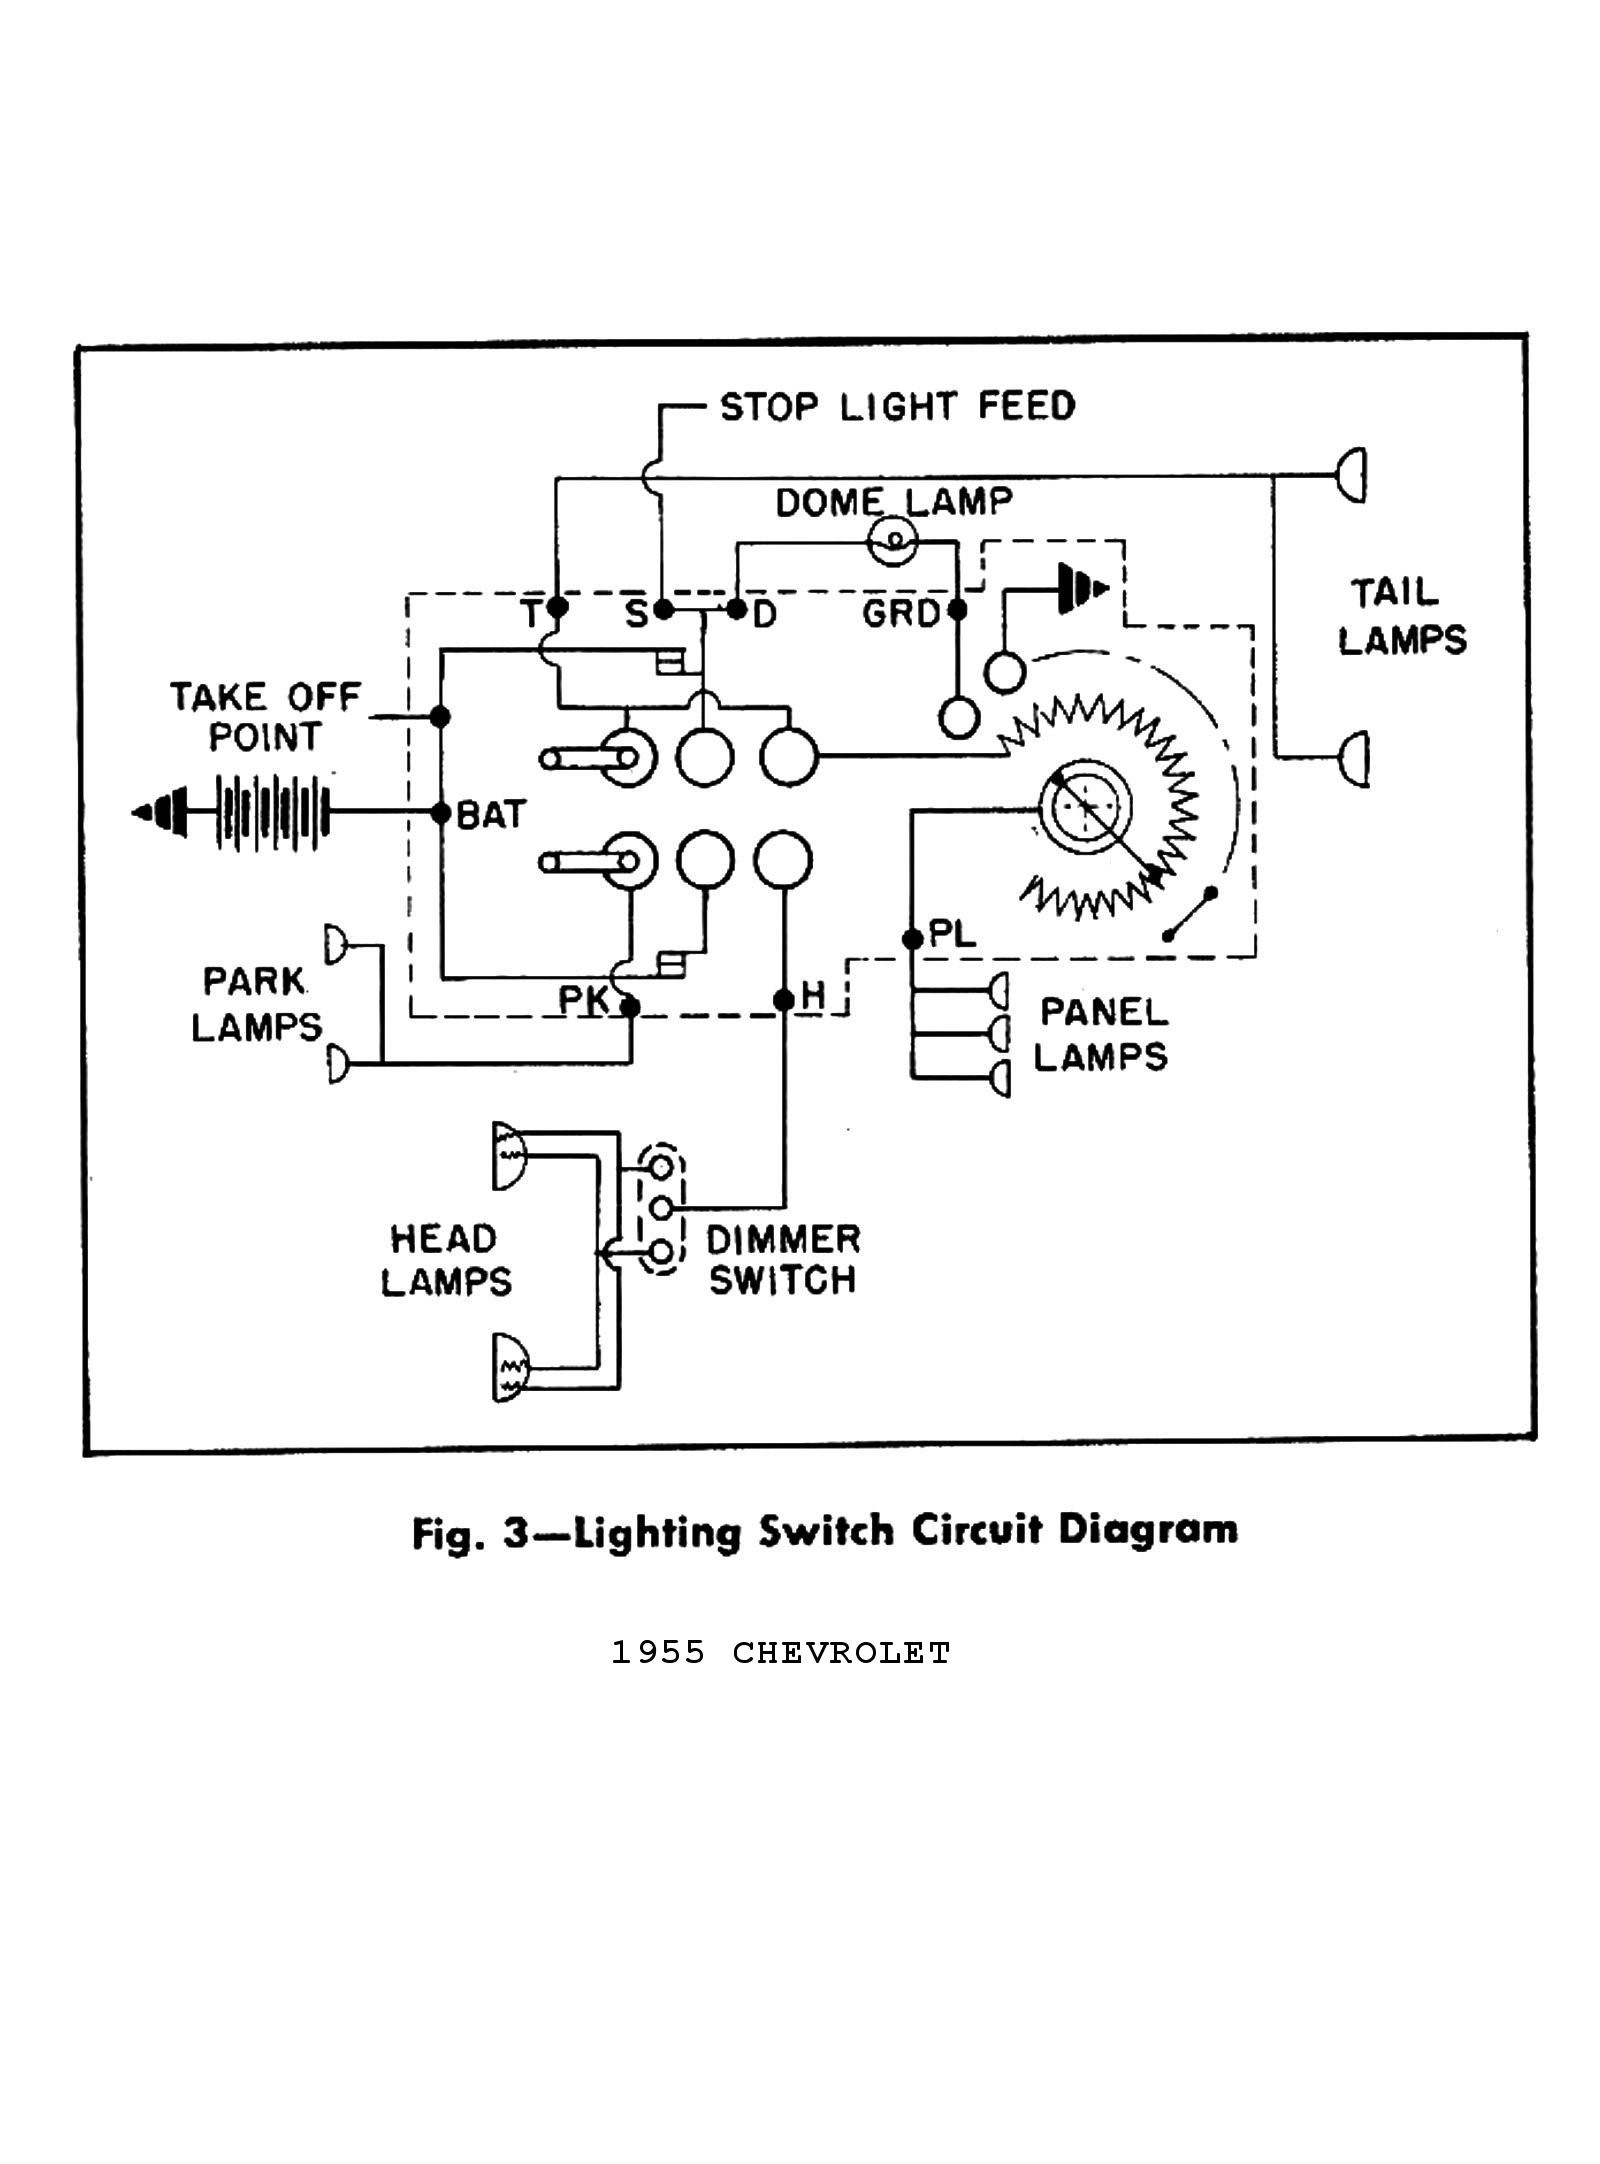 hight resolution of gm headlight switch wiring diagram wiring diagram note 1997 chevy silverado headlight switch wiring